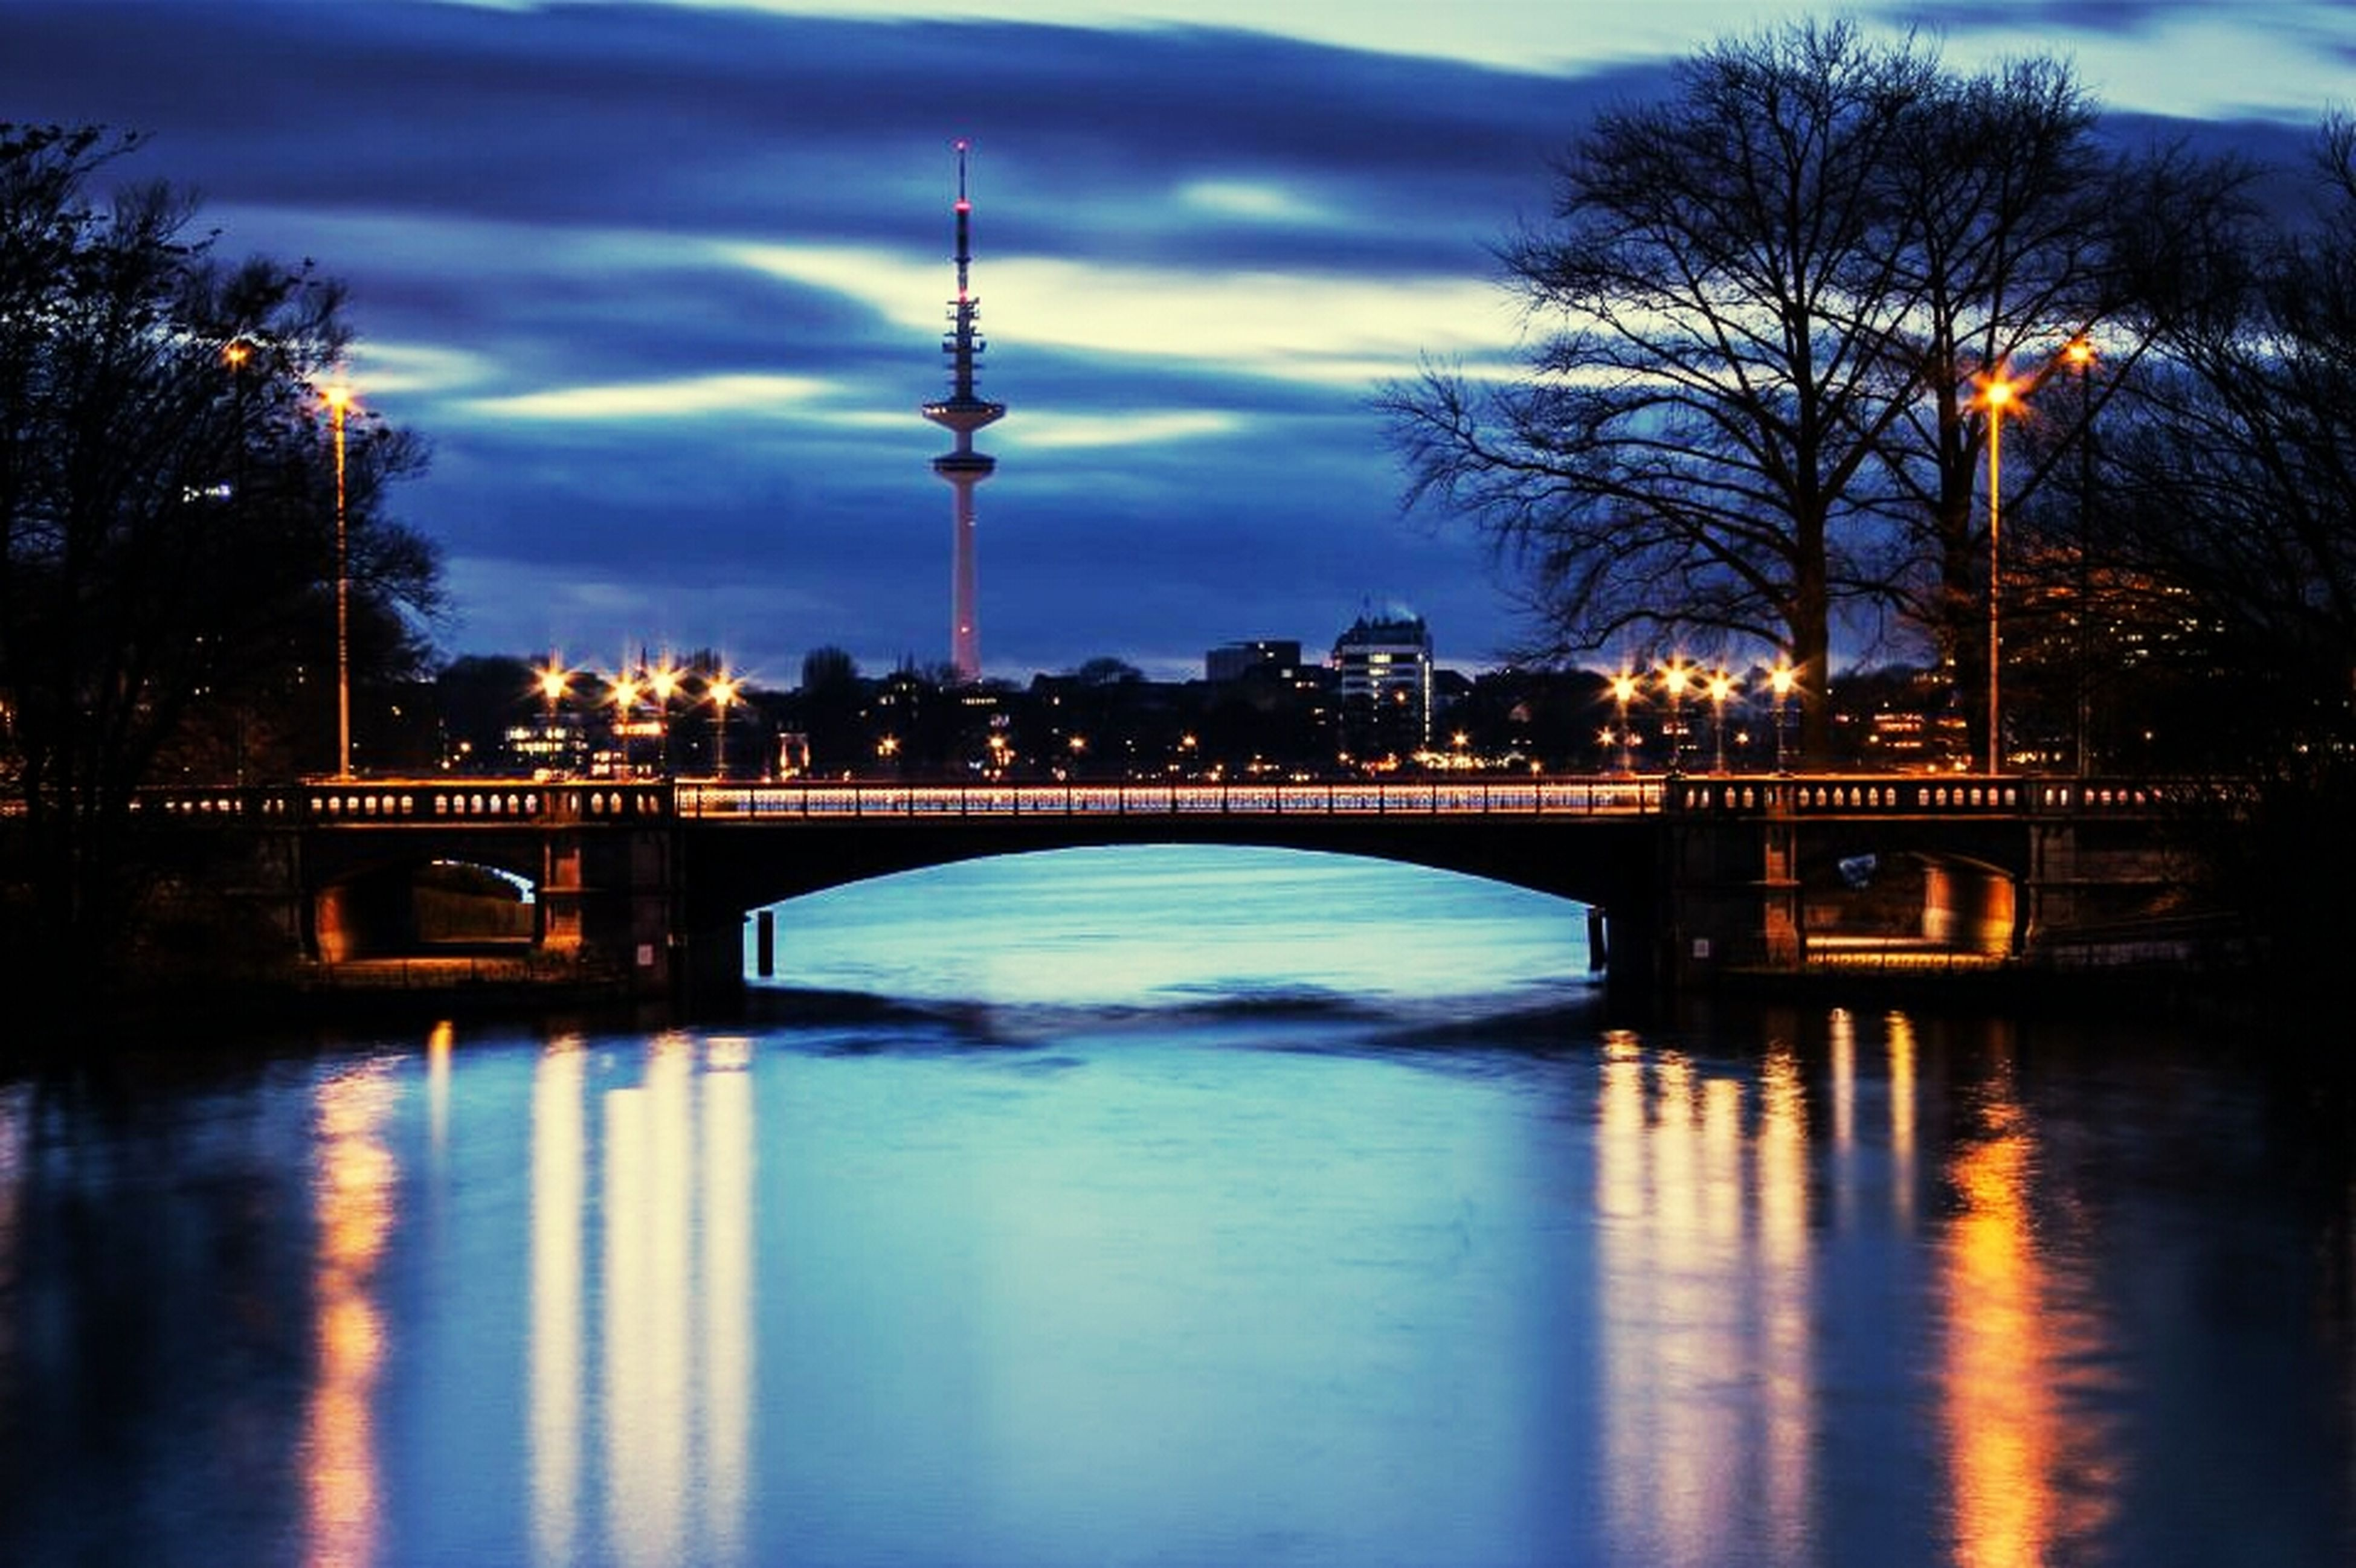 connection, water, built structure, architecture, bridge - man made structure, sky, waterfront, river, reflection, bridge, cloud - sky, tree, arch bridge, illuminated, sunset, dusk, cloud, engineering, tranquility, silhouette